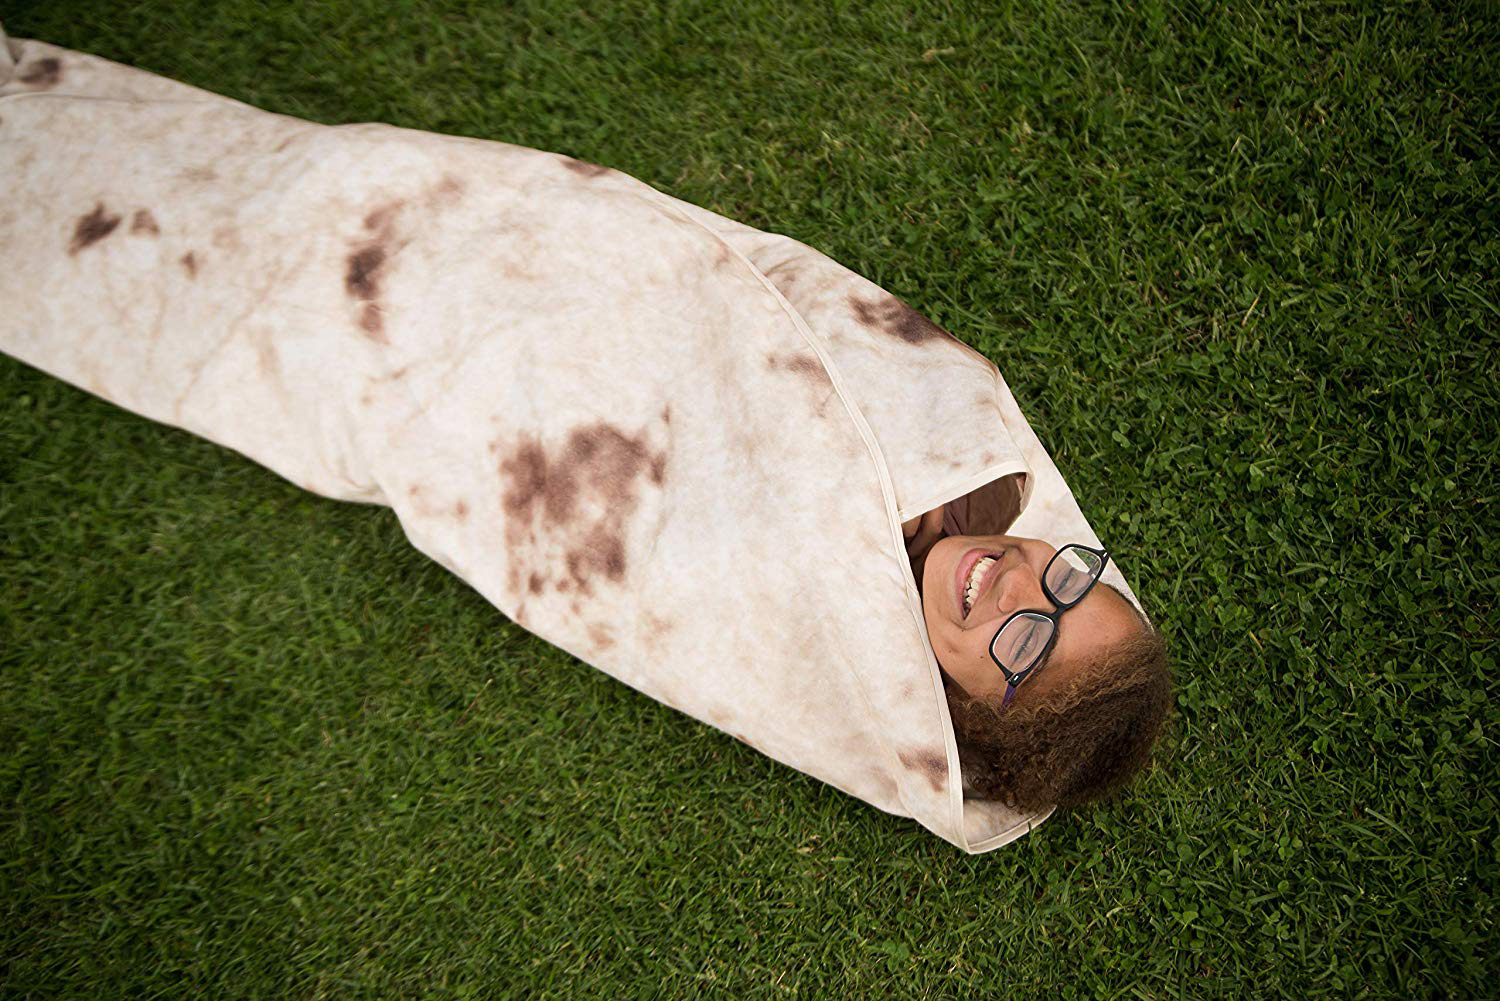 Shopping: Ever Wanted To Be a Human Burrito? Now You Can With These Tortilla Print Blankets That Are Going Viral